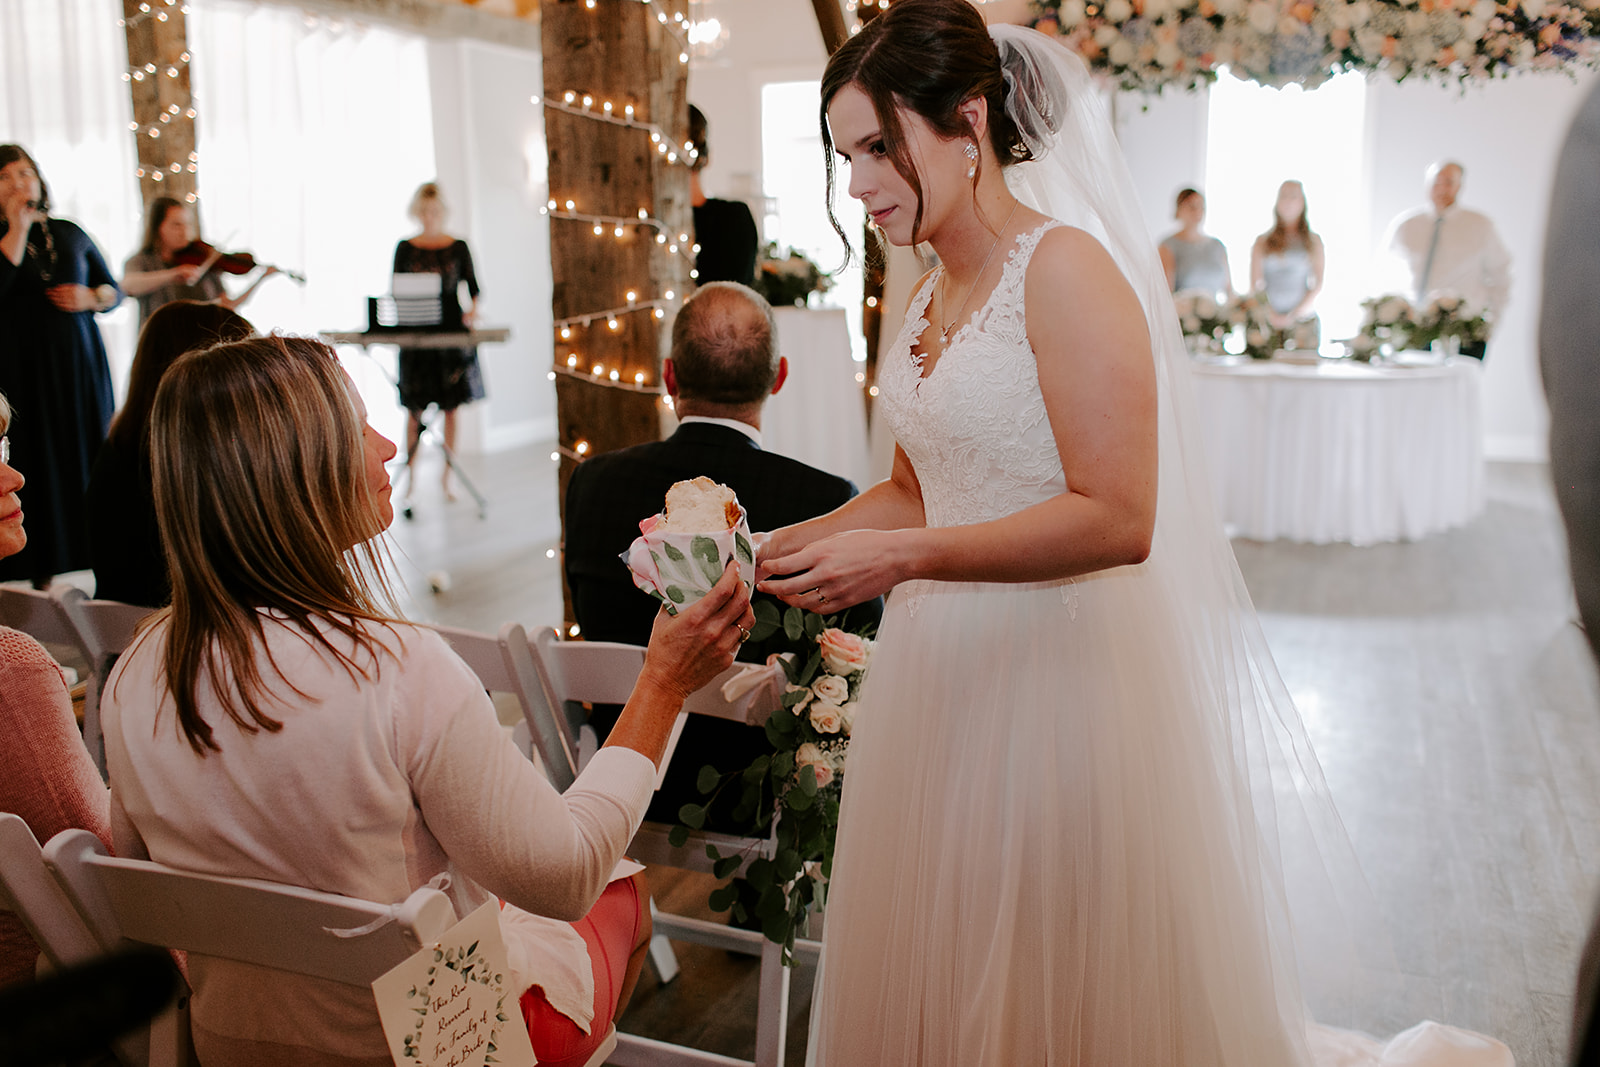 Kendra_and_Mattew_Indiana_Wedding_by_Emily_Wehner-573.jpg